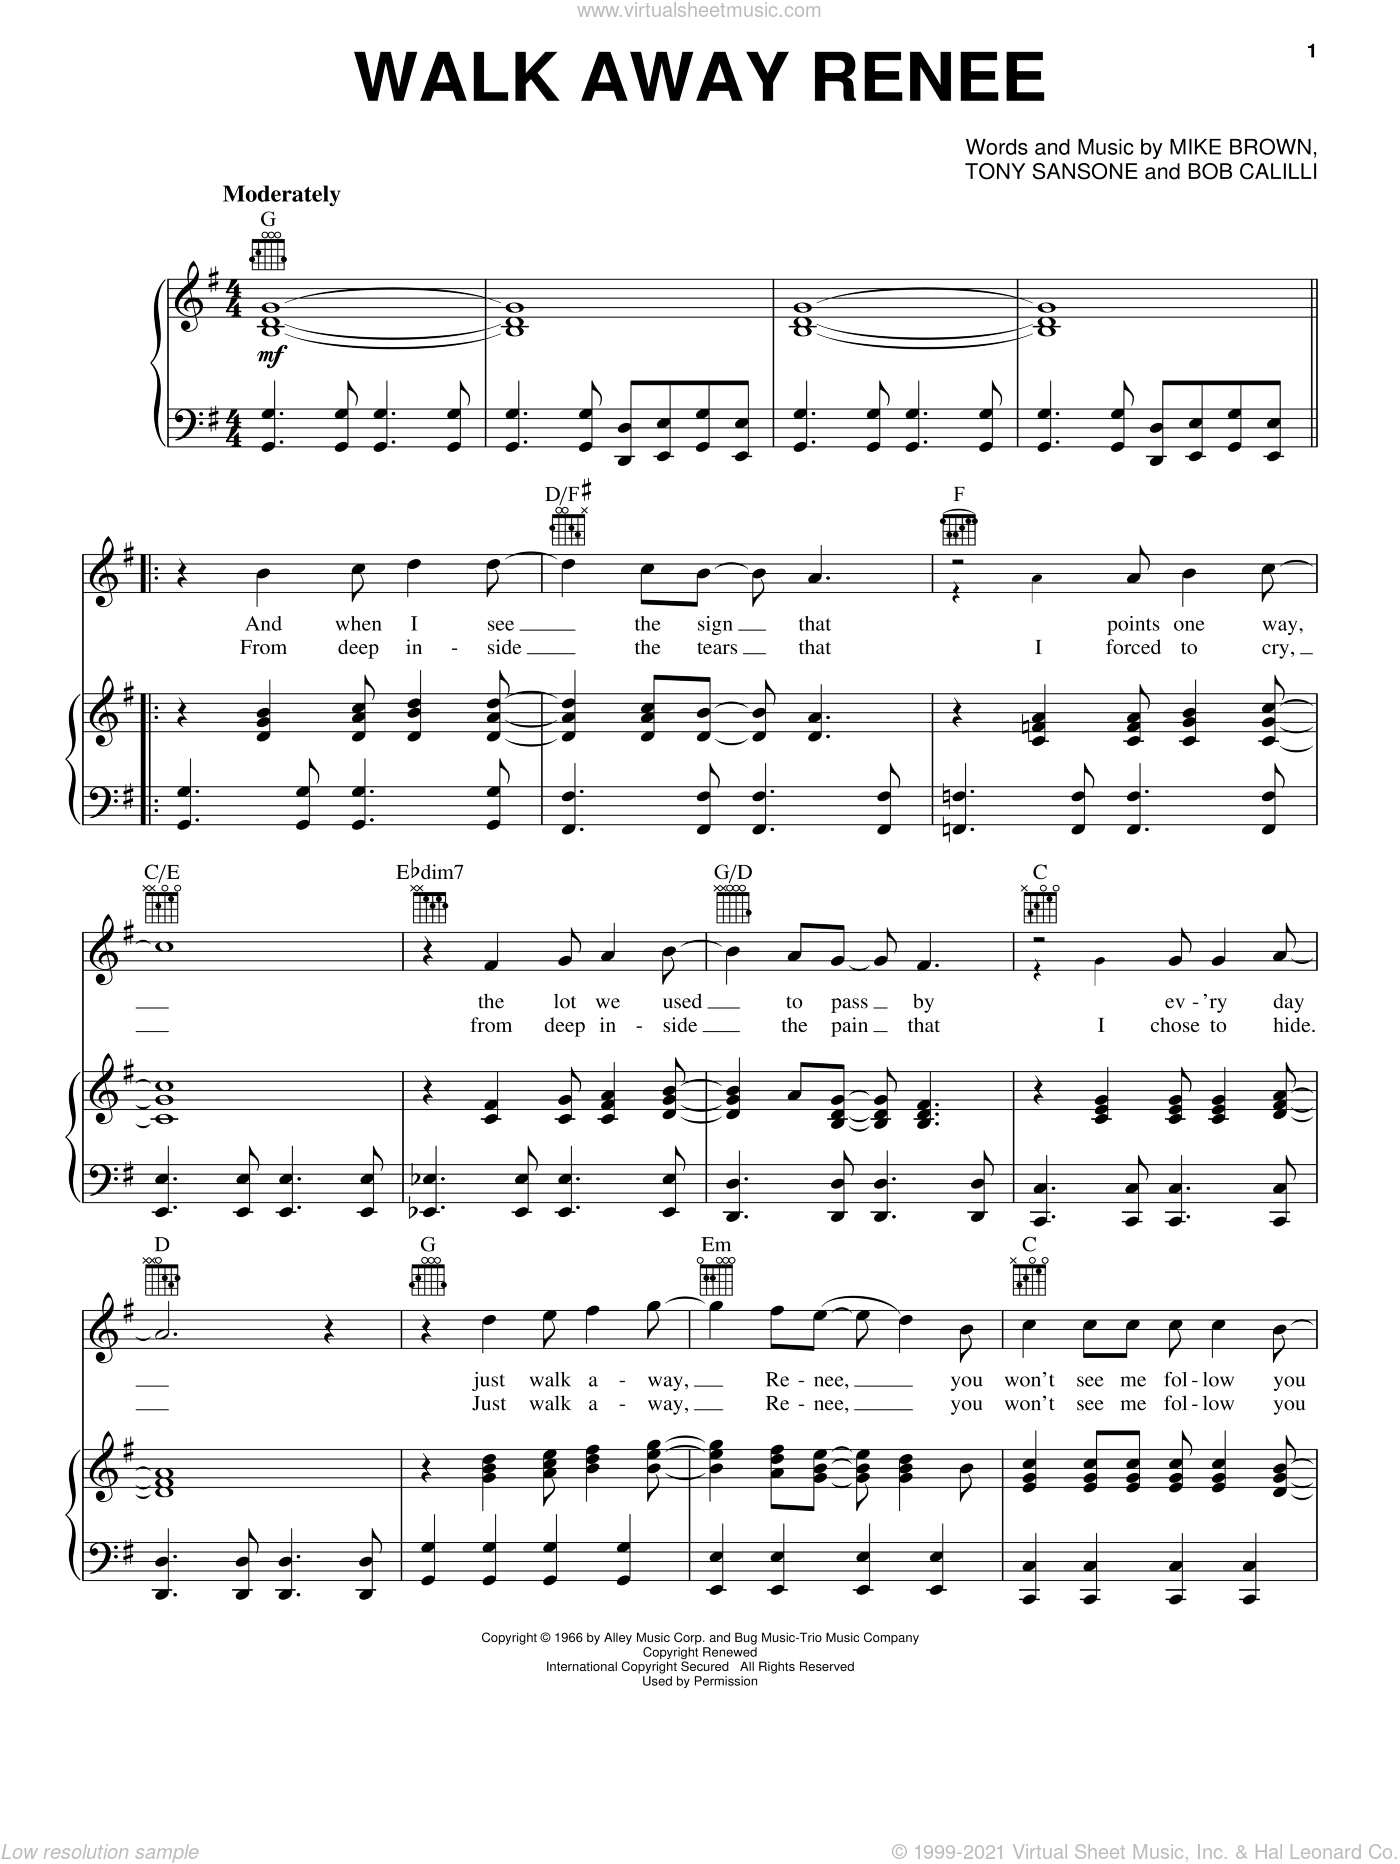 Walk Away Renee sheet music for voice, piano or guitar by Tony Sansone